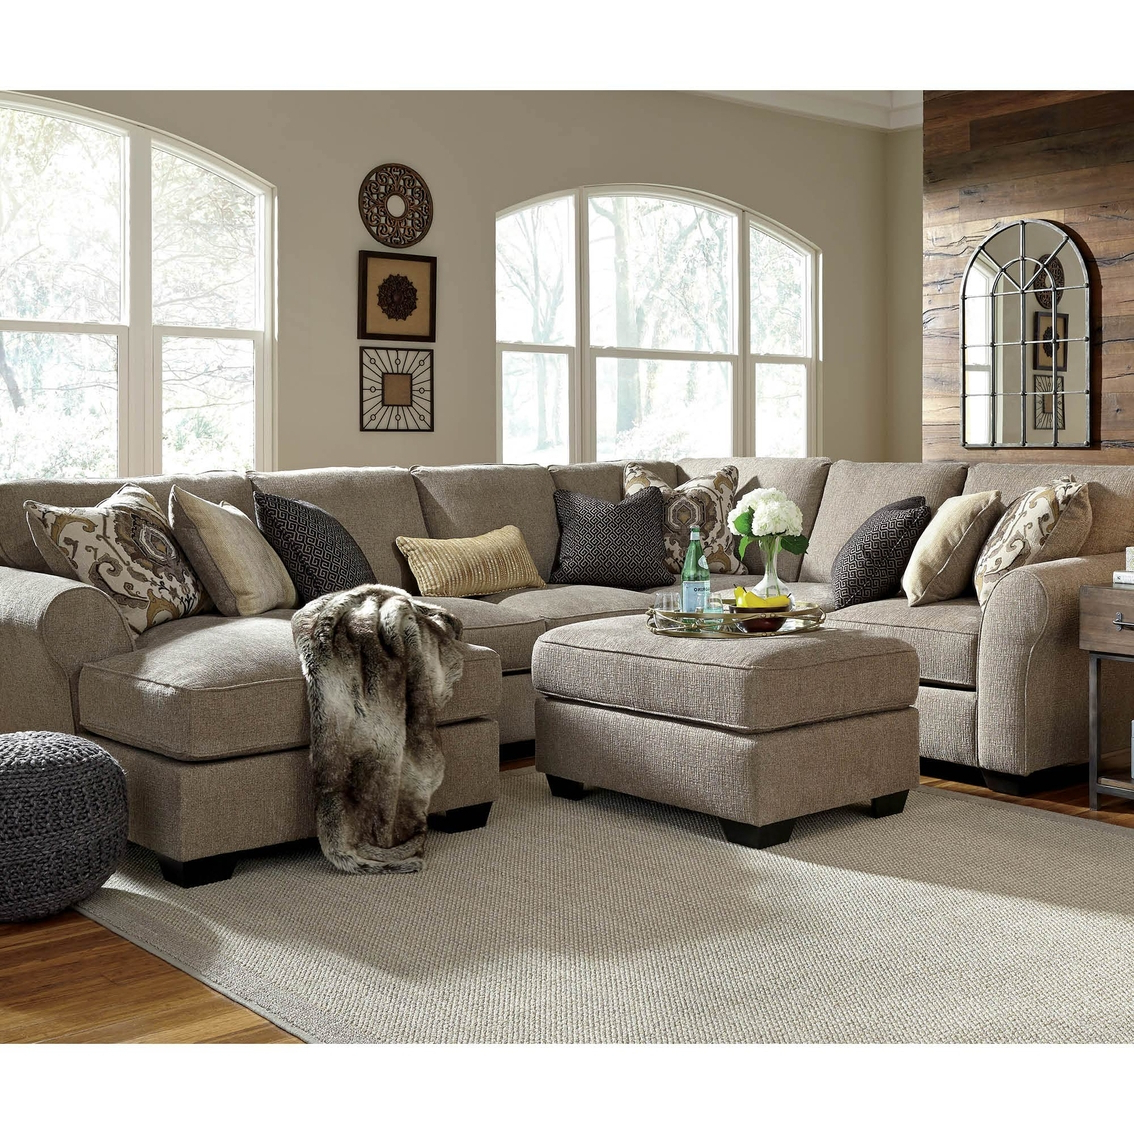 Baci Living Room Regarding Best And Newest Turdur 2 Piece Sectionals With Raf Loveseat (View 3 of 20)